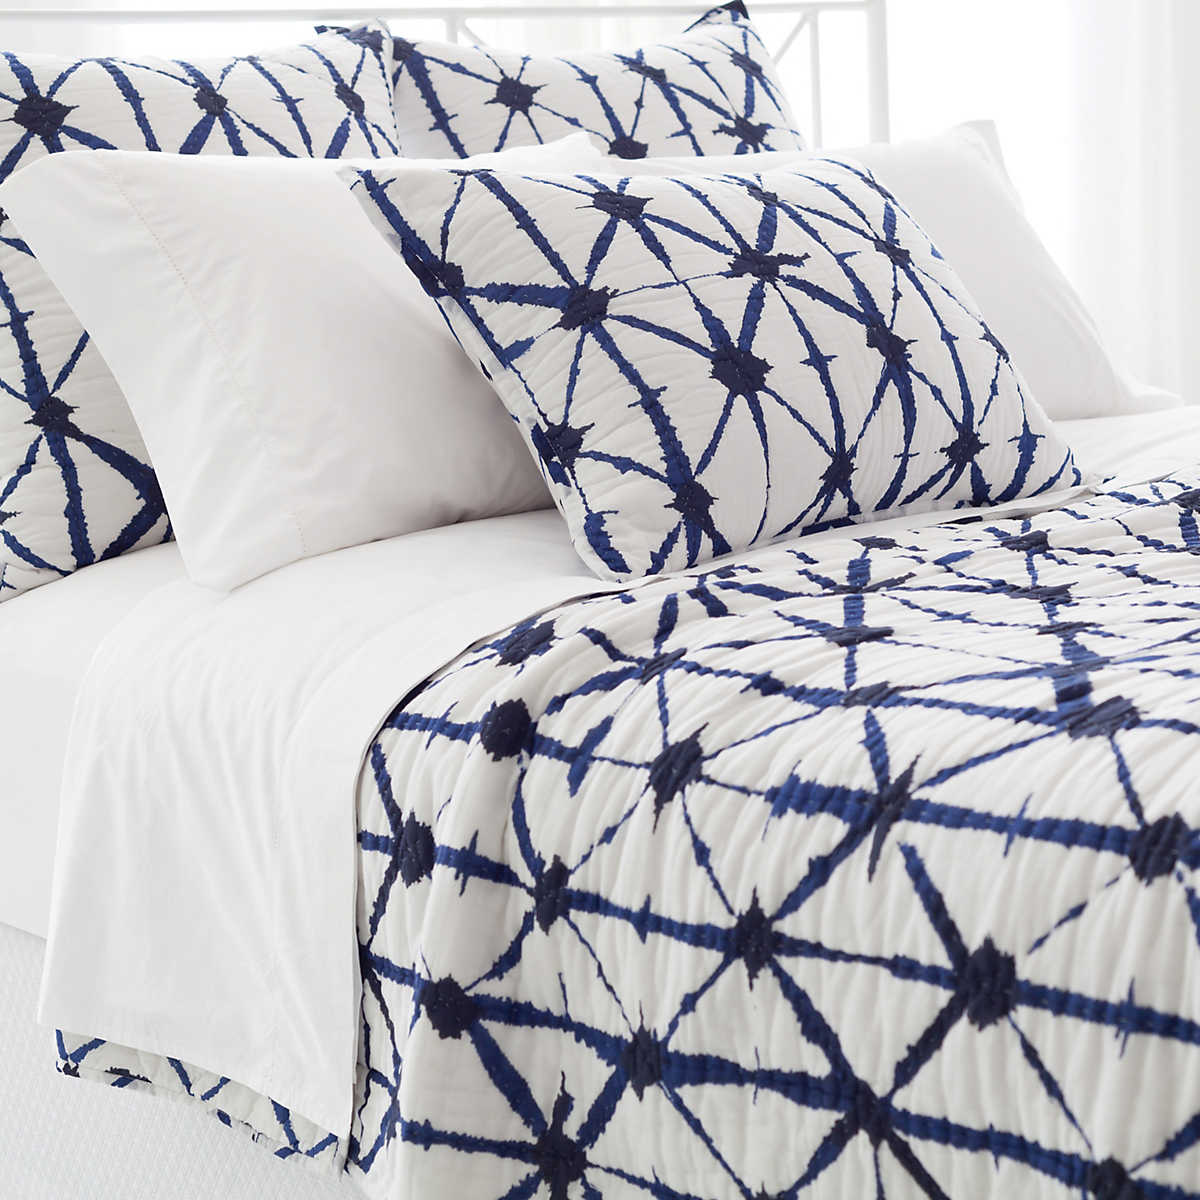 Indigo Bed Linen Part - 39: Annie Selke